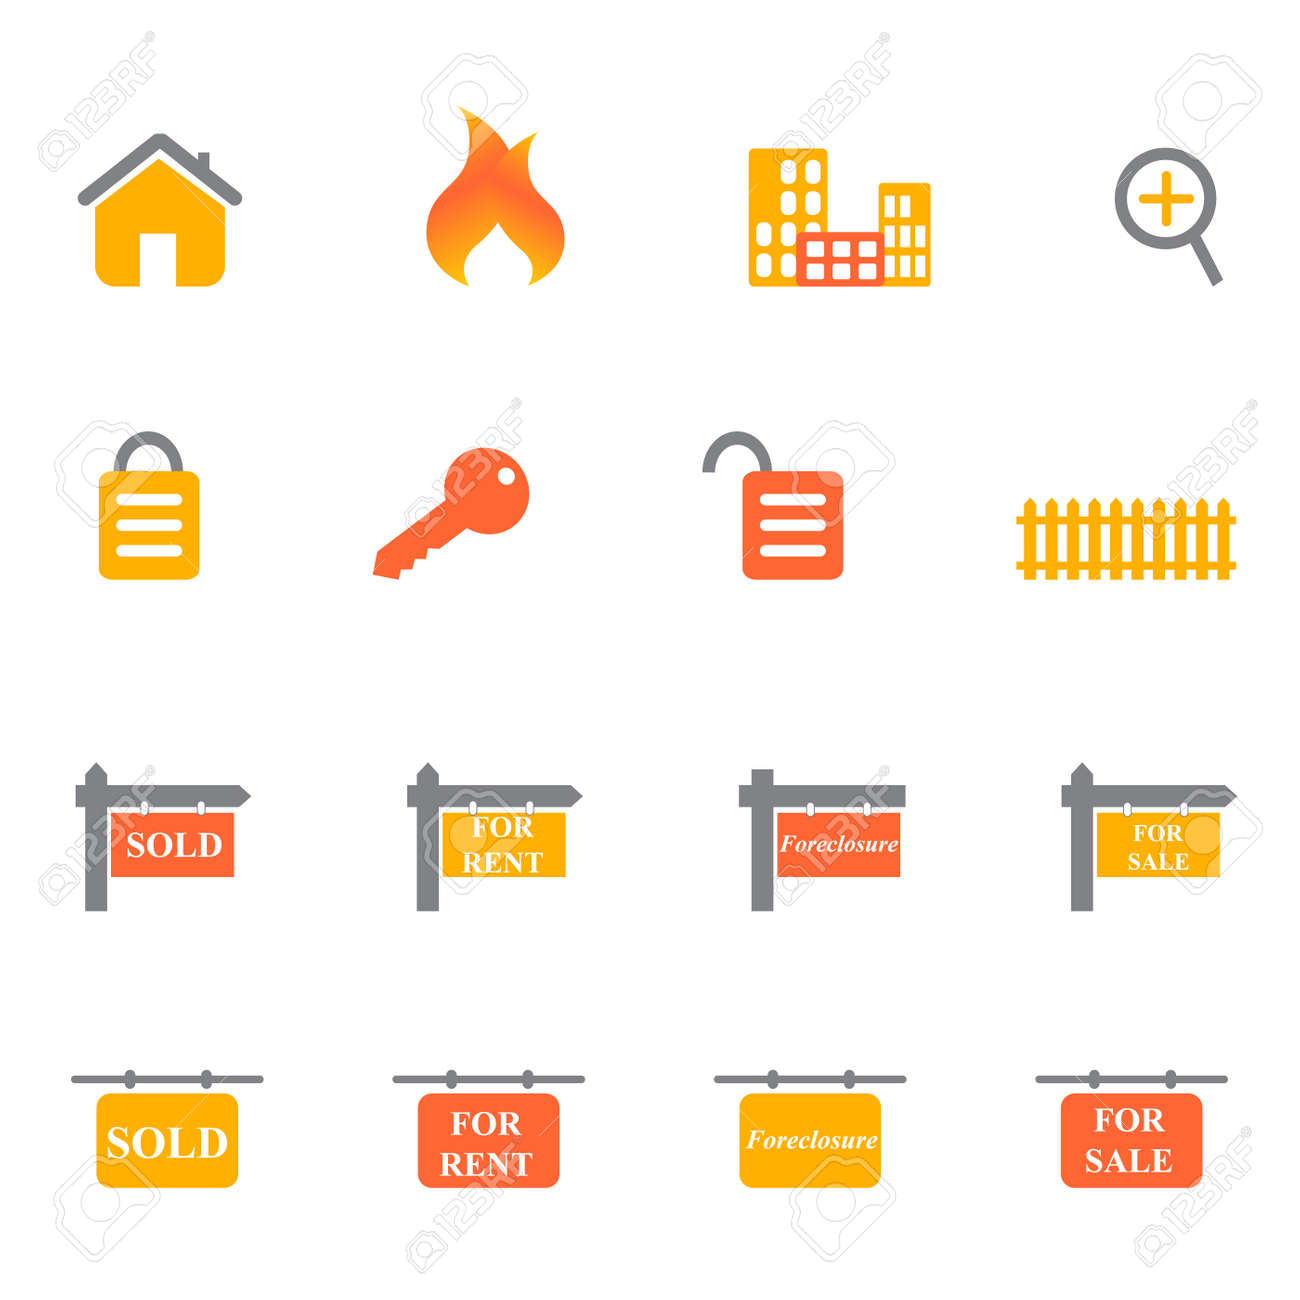 Real estate icons and symbols in orange and yellow tones Stock Vector - 7164100